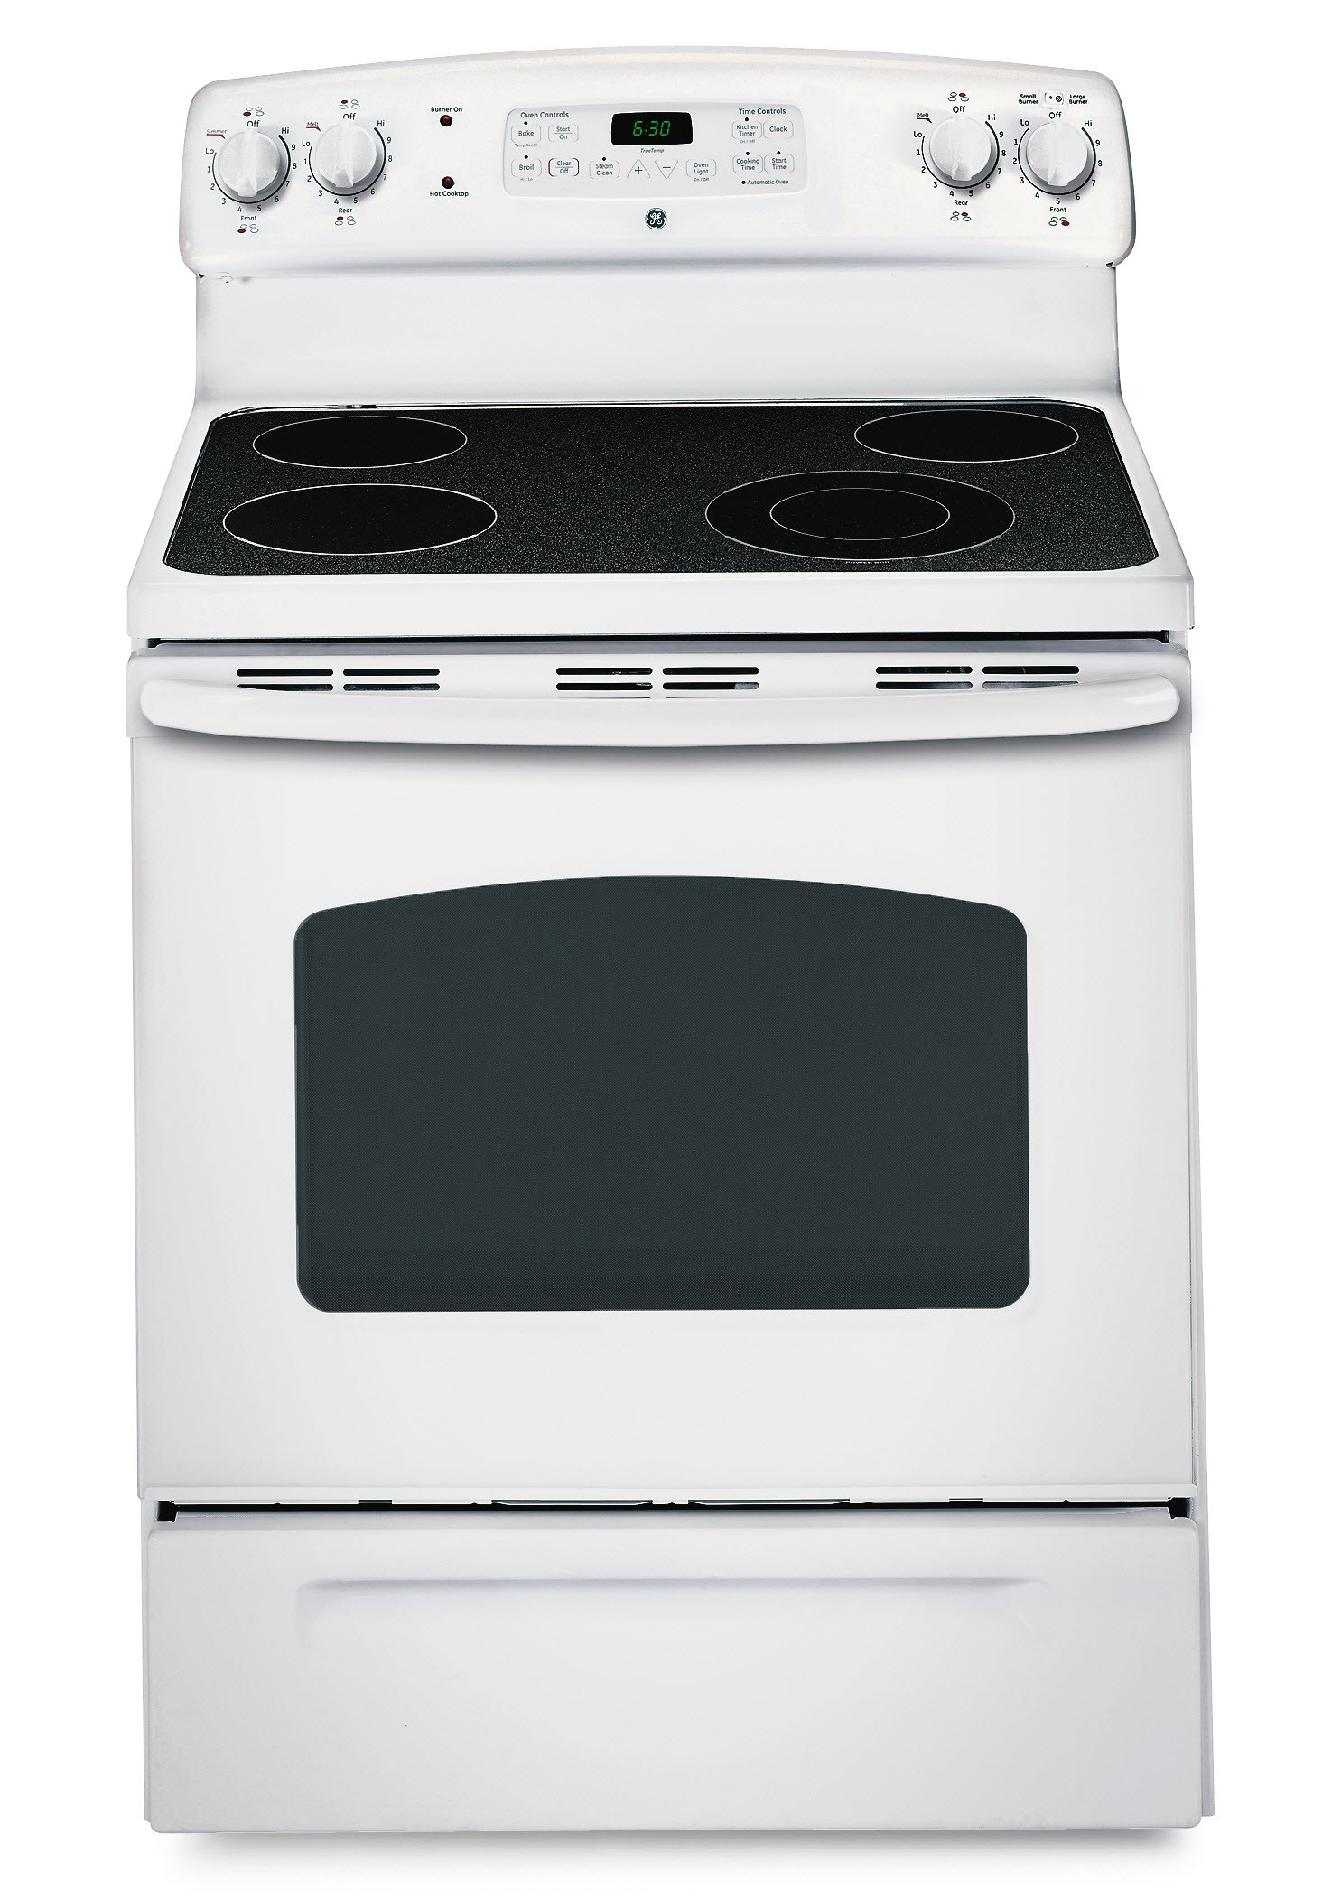 GE 5.3 cu. ft. Electric Range